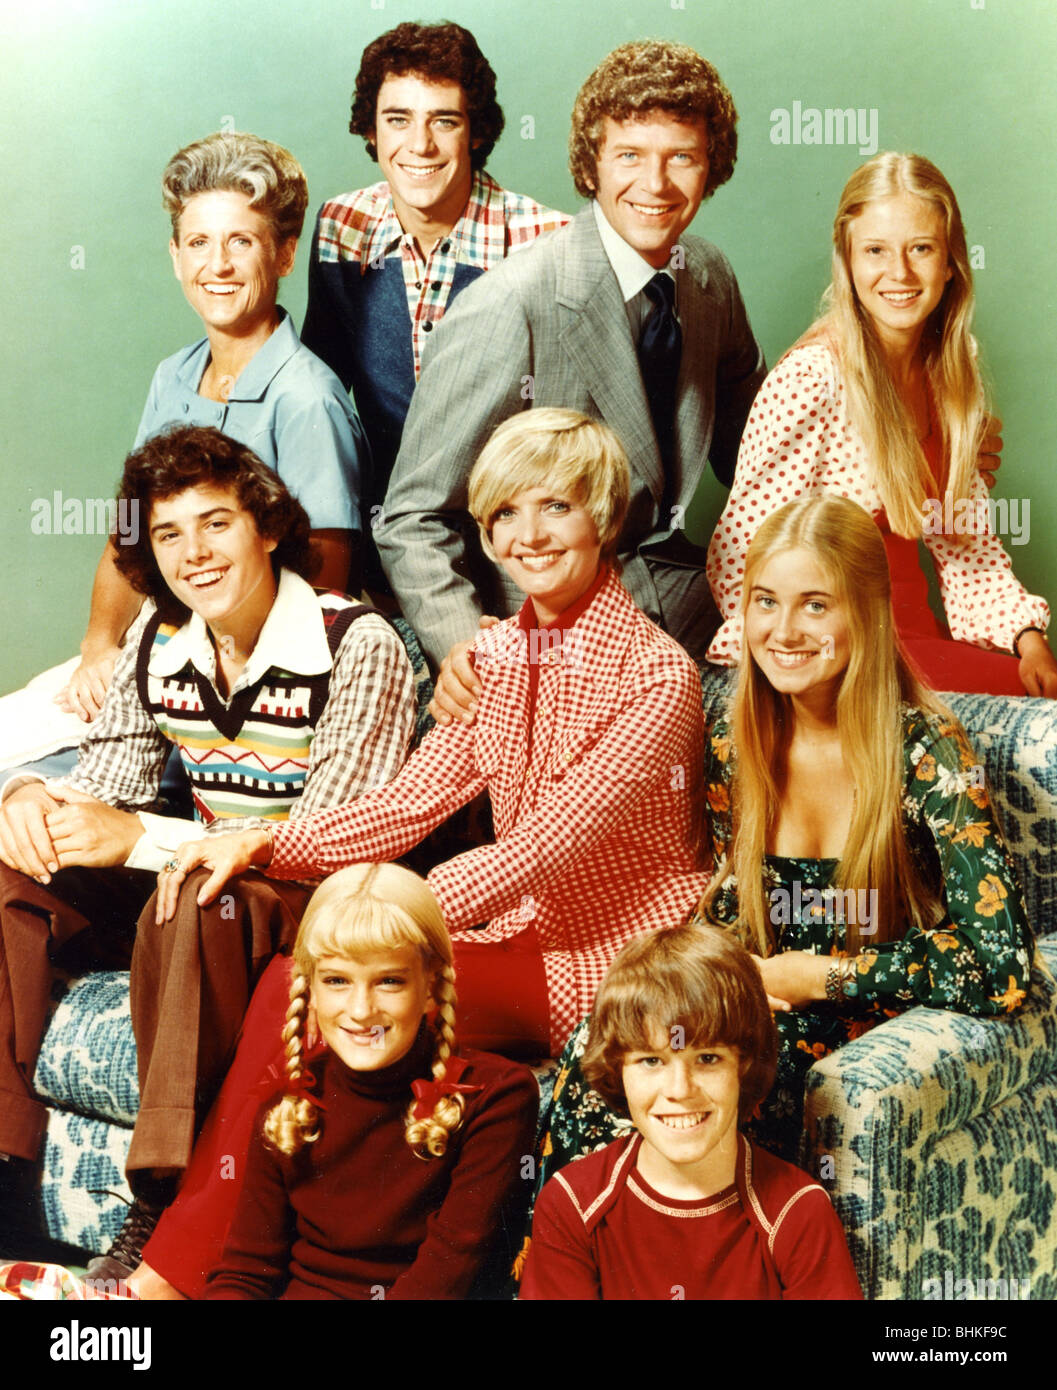 THE BRADY BUNCH  - US TV series 1969-74 with principals Robert Reed and Florence Henderson - Stock Image